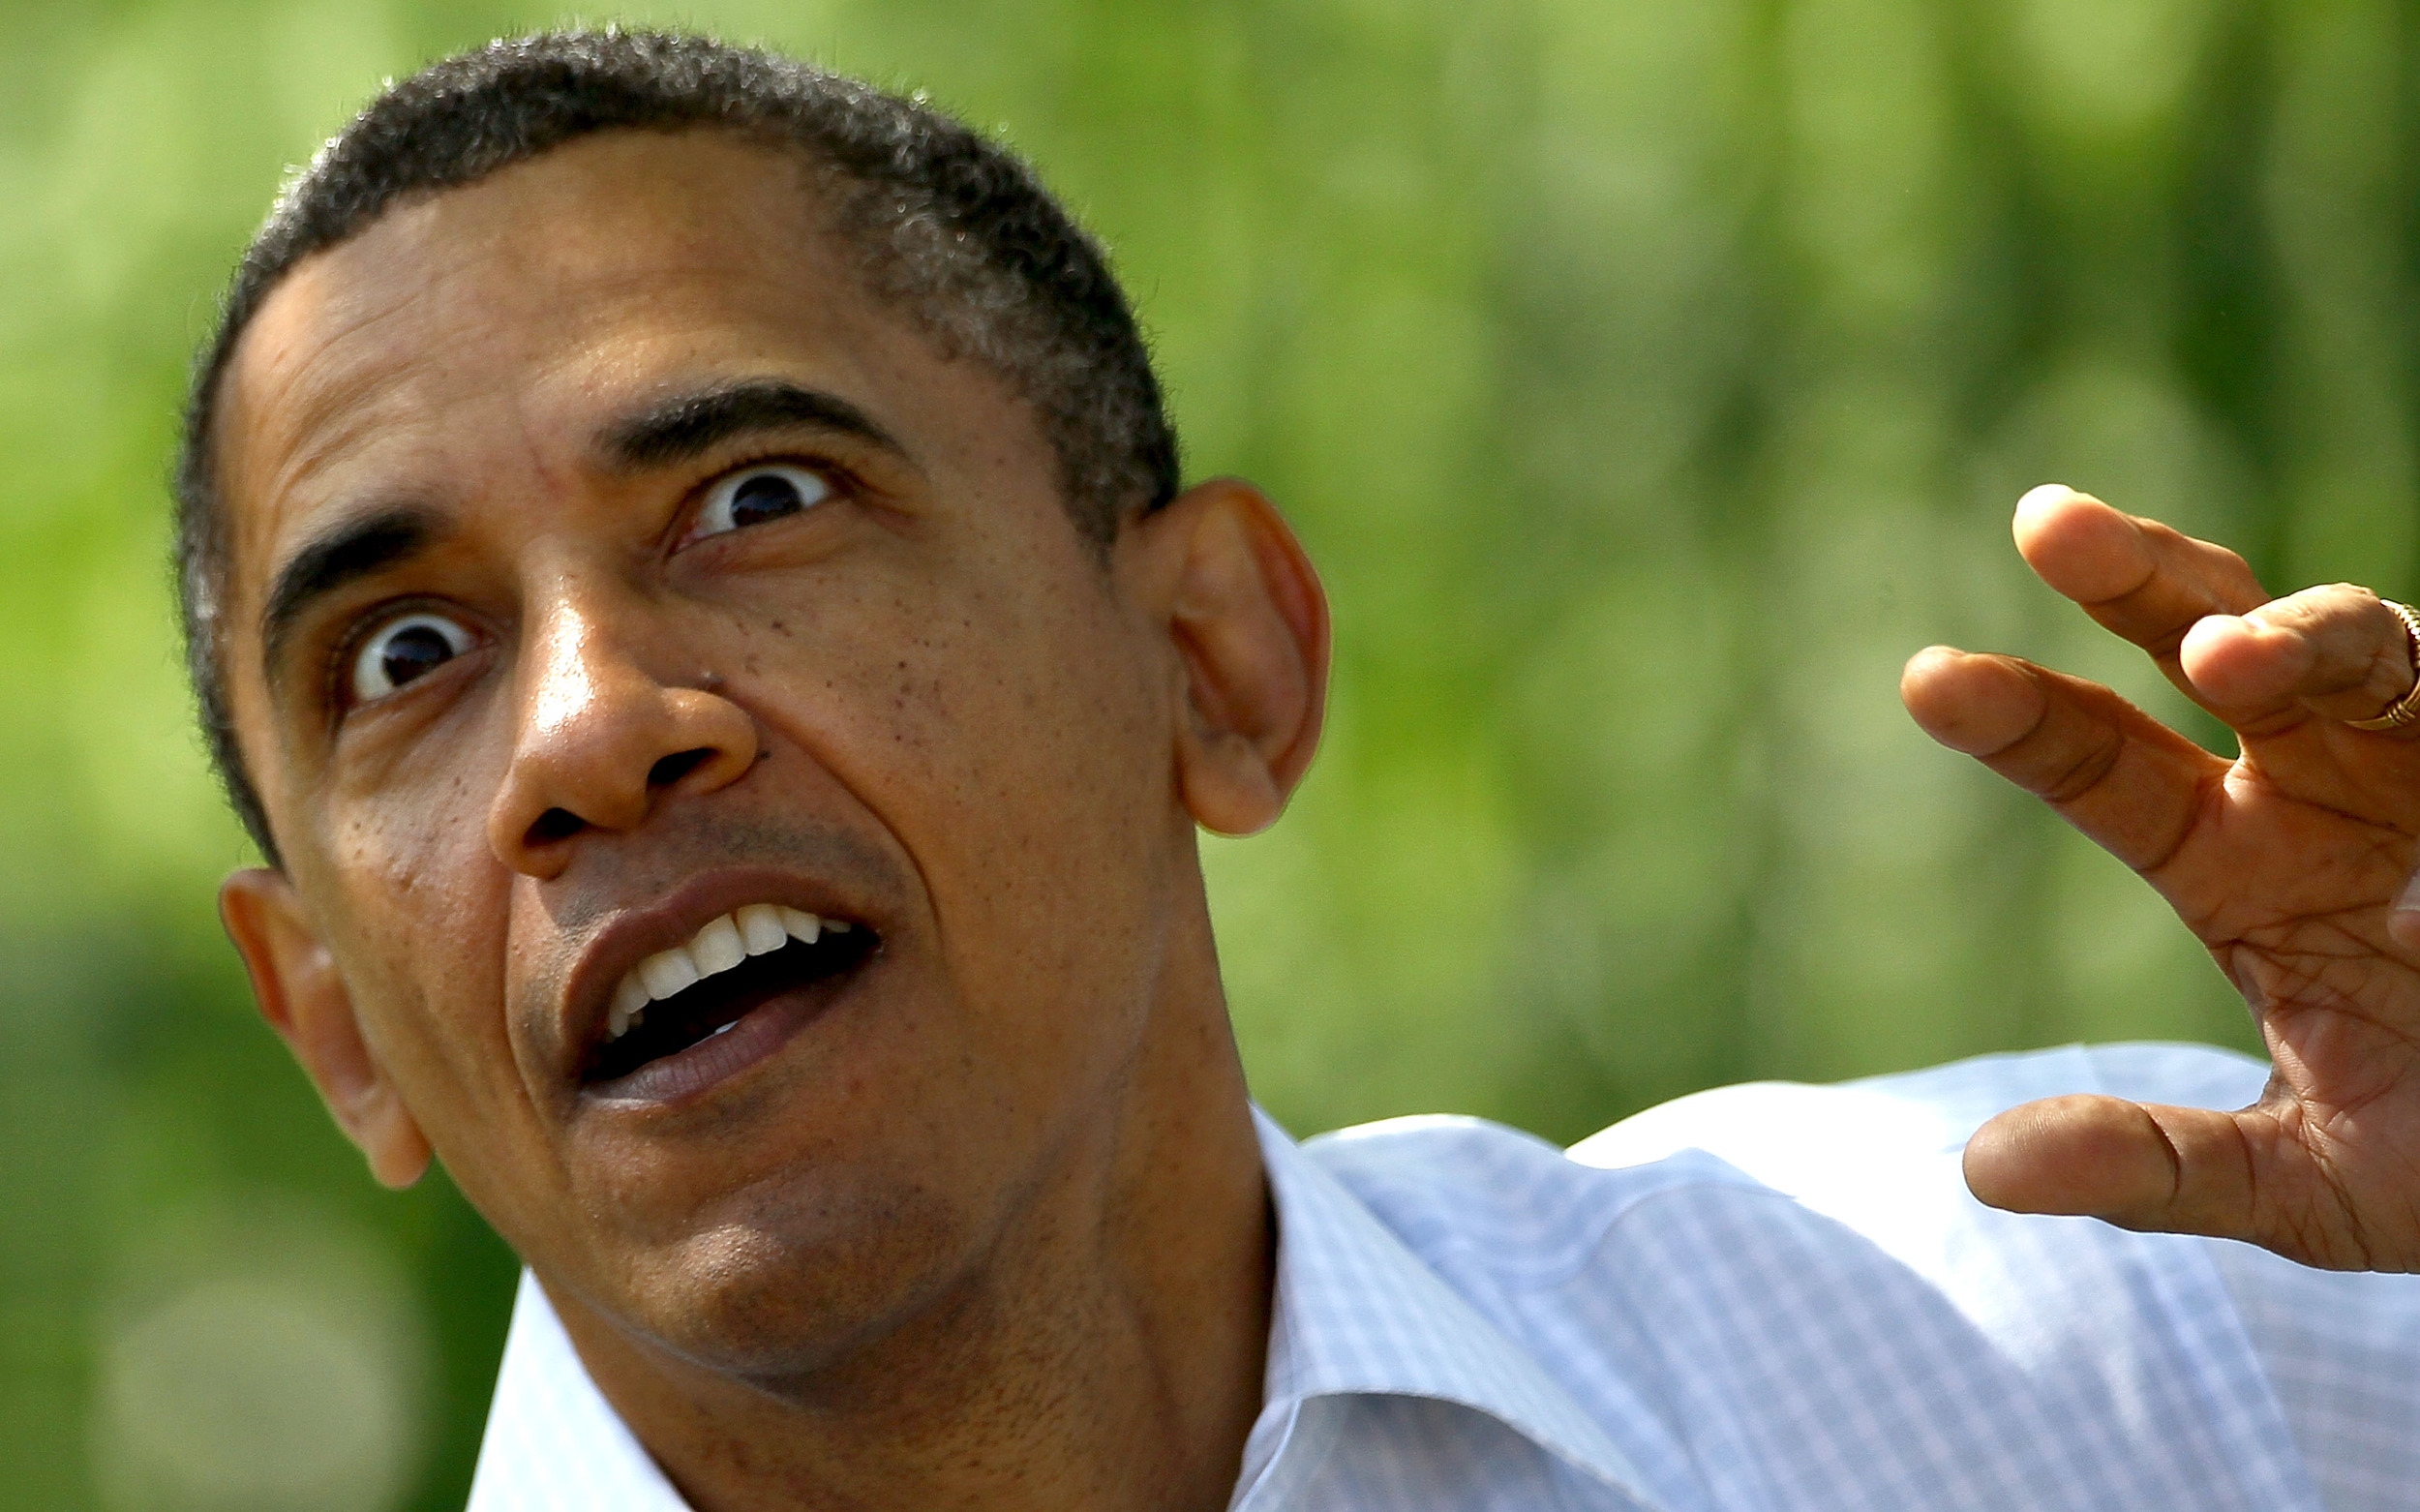 Article - Obama's wildest 'Where the Wild Things Are' faces